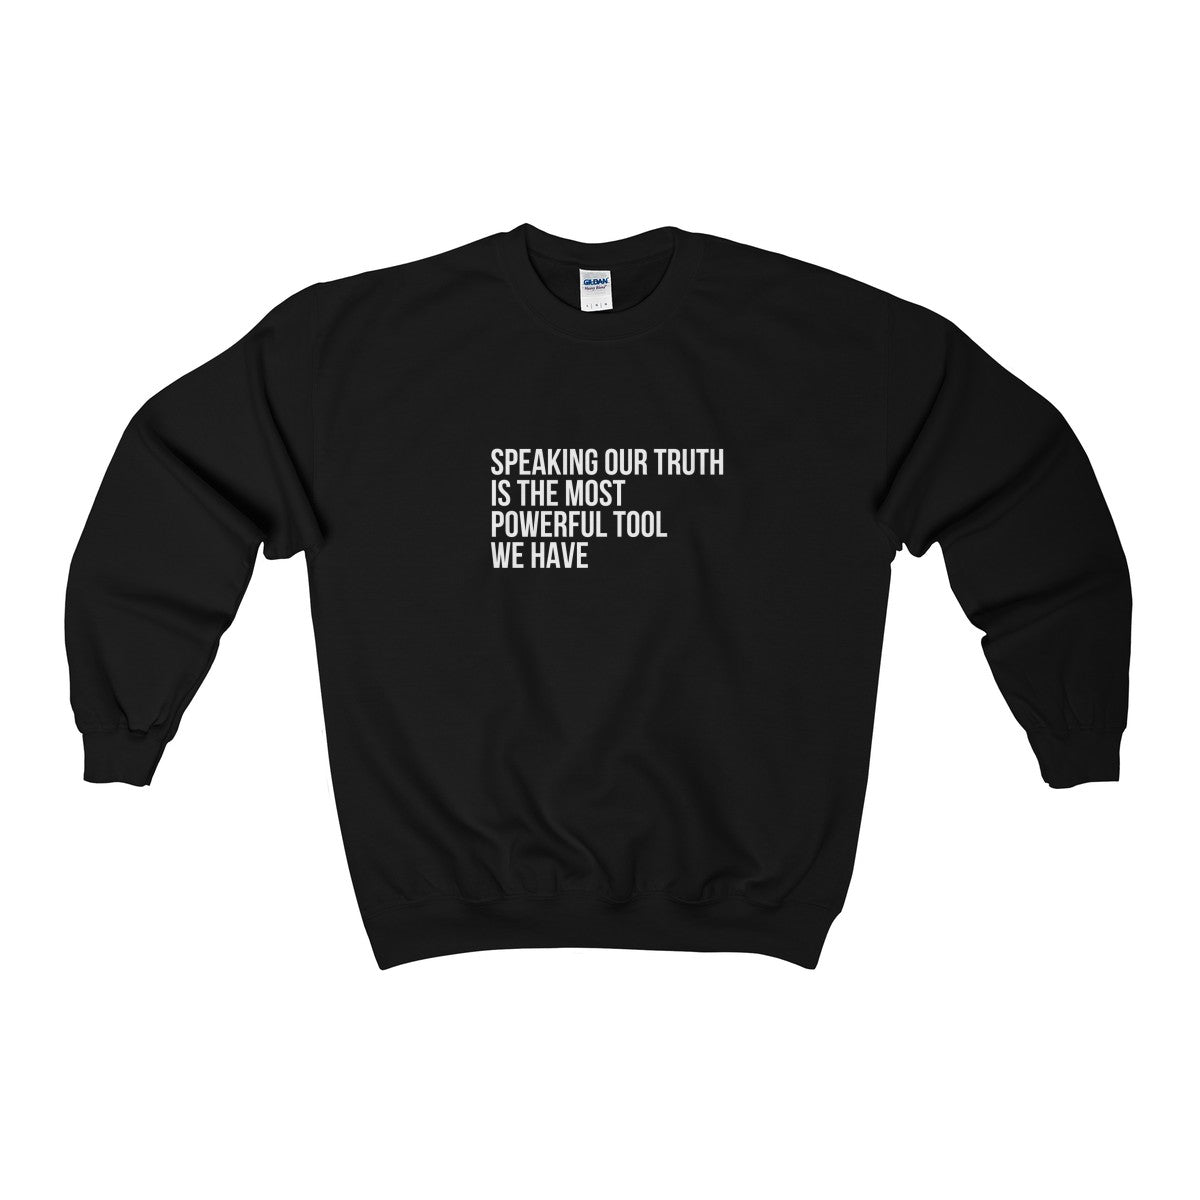 speaking our truth is the most powerful tool we have hoodie hype streetwear designed in paris france oprah inspirational quote